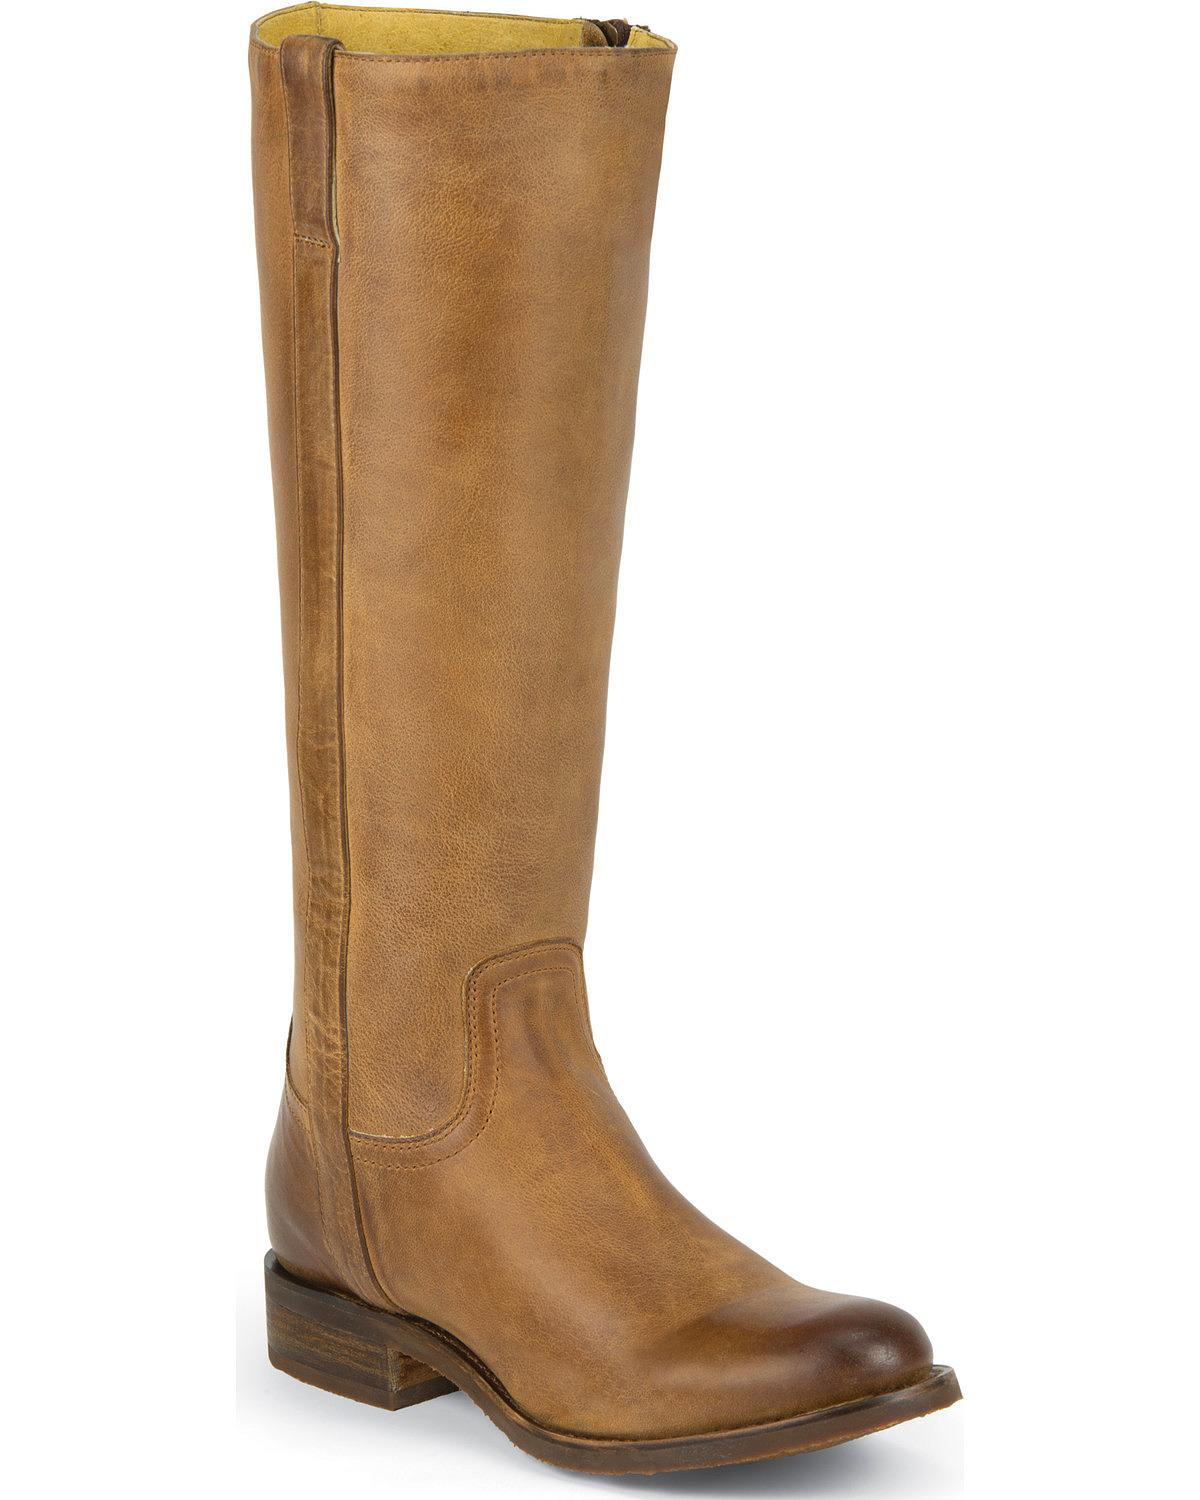 Free shipping on women's boots at tanzaniasafarisorvicos.ga Shop all types of boots for women including riding boots, knee-high boots and rain boots from the best brands including UGG, Timberland, Hunter and more. UGG® 'Classic II' Genuine Shearling Lined Tall Boot (Women) $ () Price Matched.